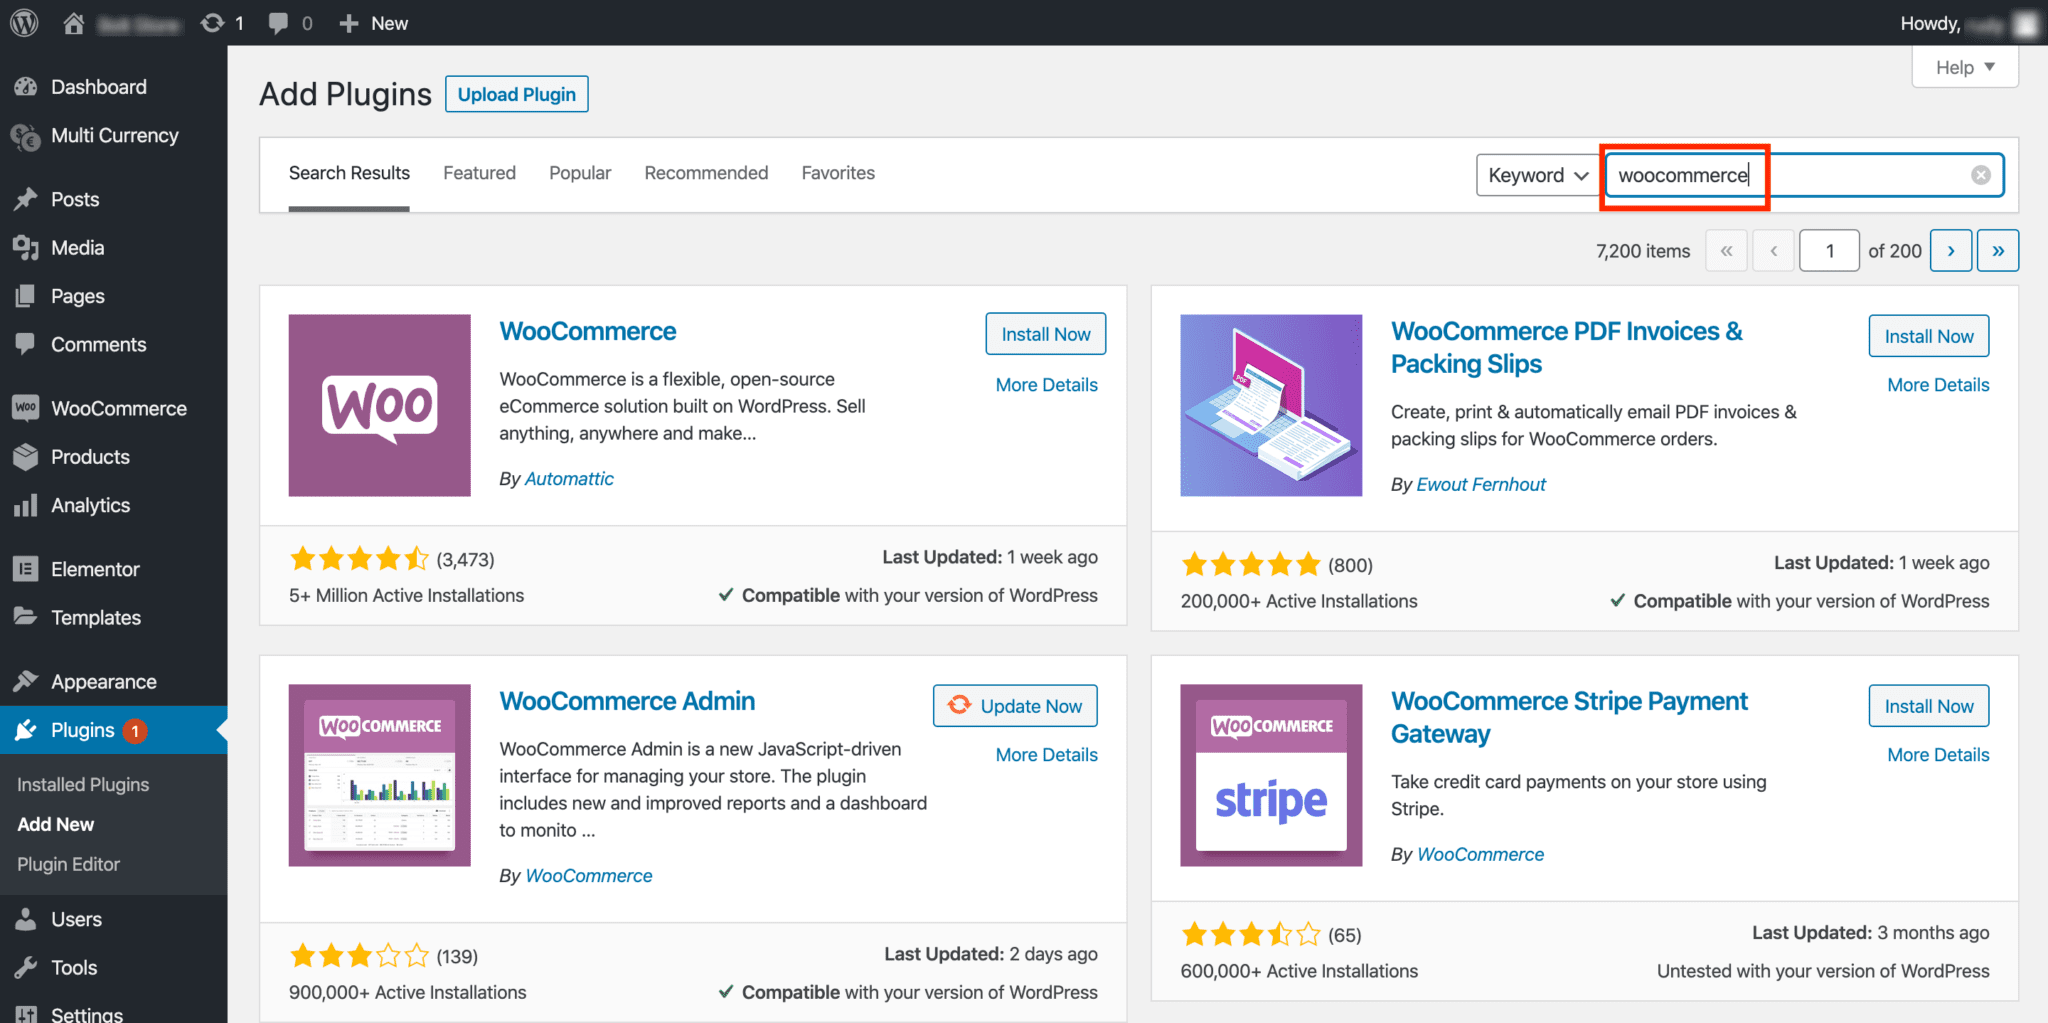 Screenshot of Add Plugins screen with WooCommerce entered into search